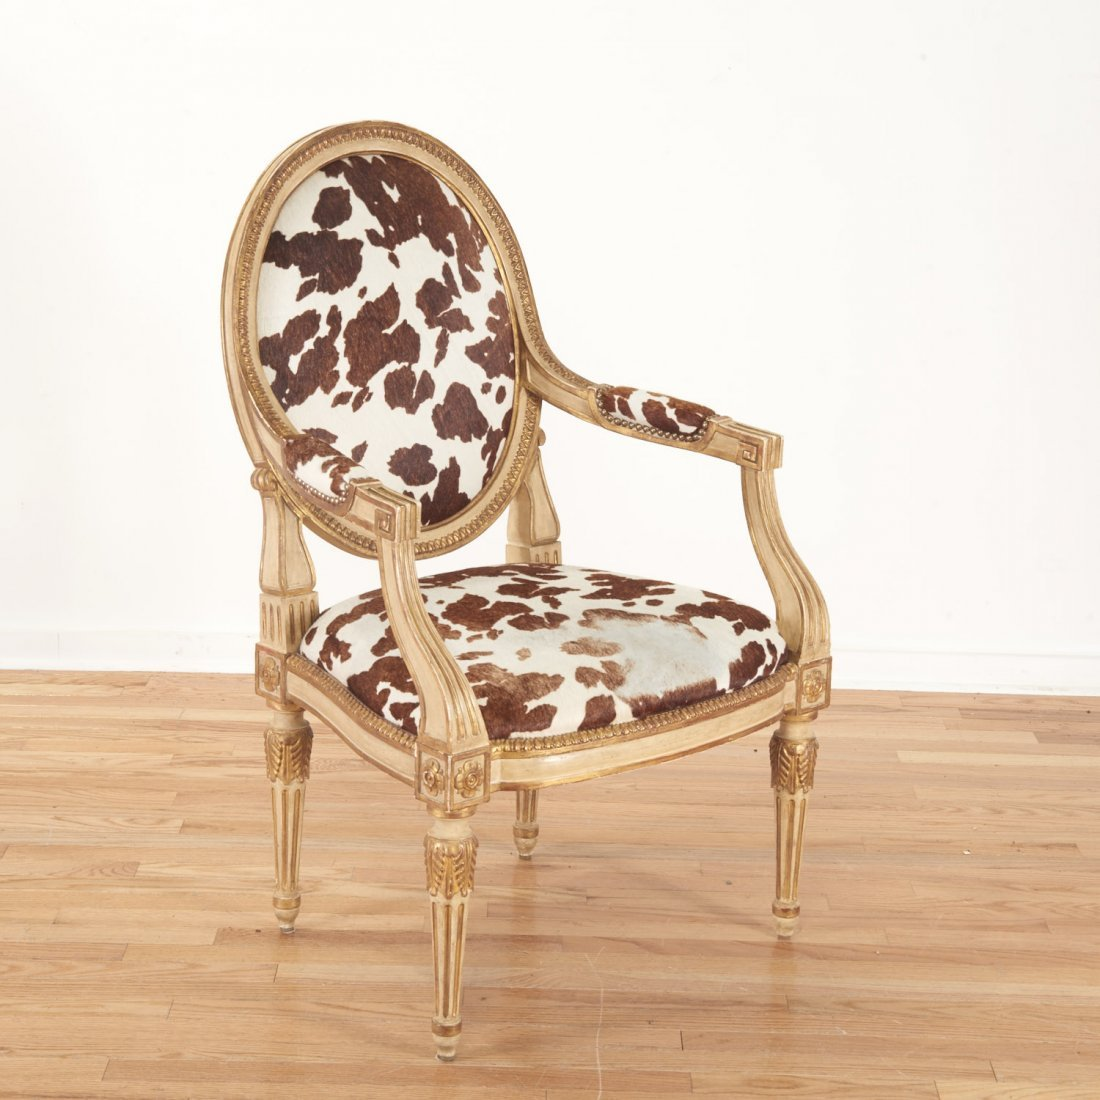 Louis XVI style cowhide fauteuil by Dennis & Leen - 3